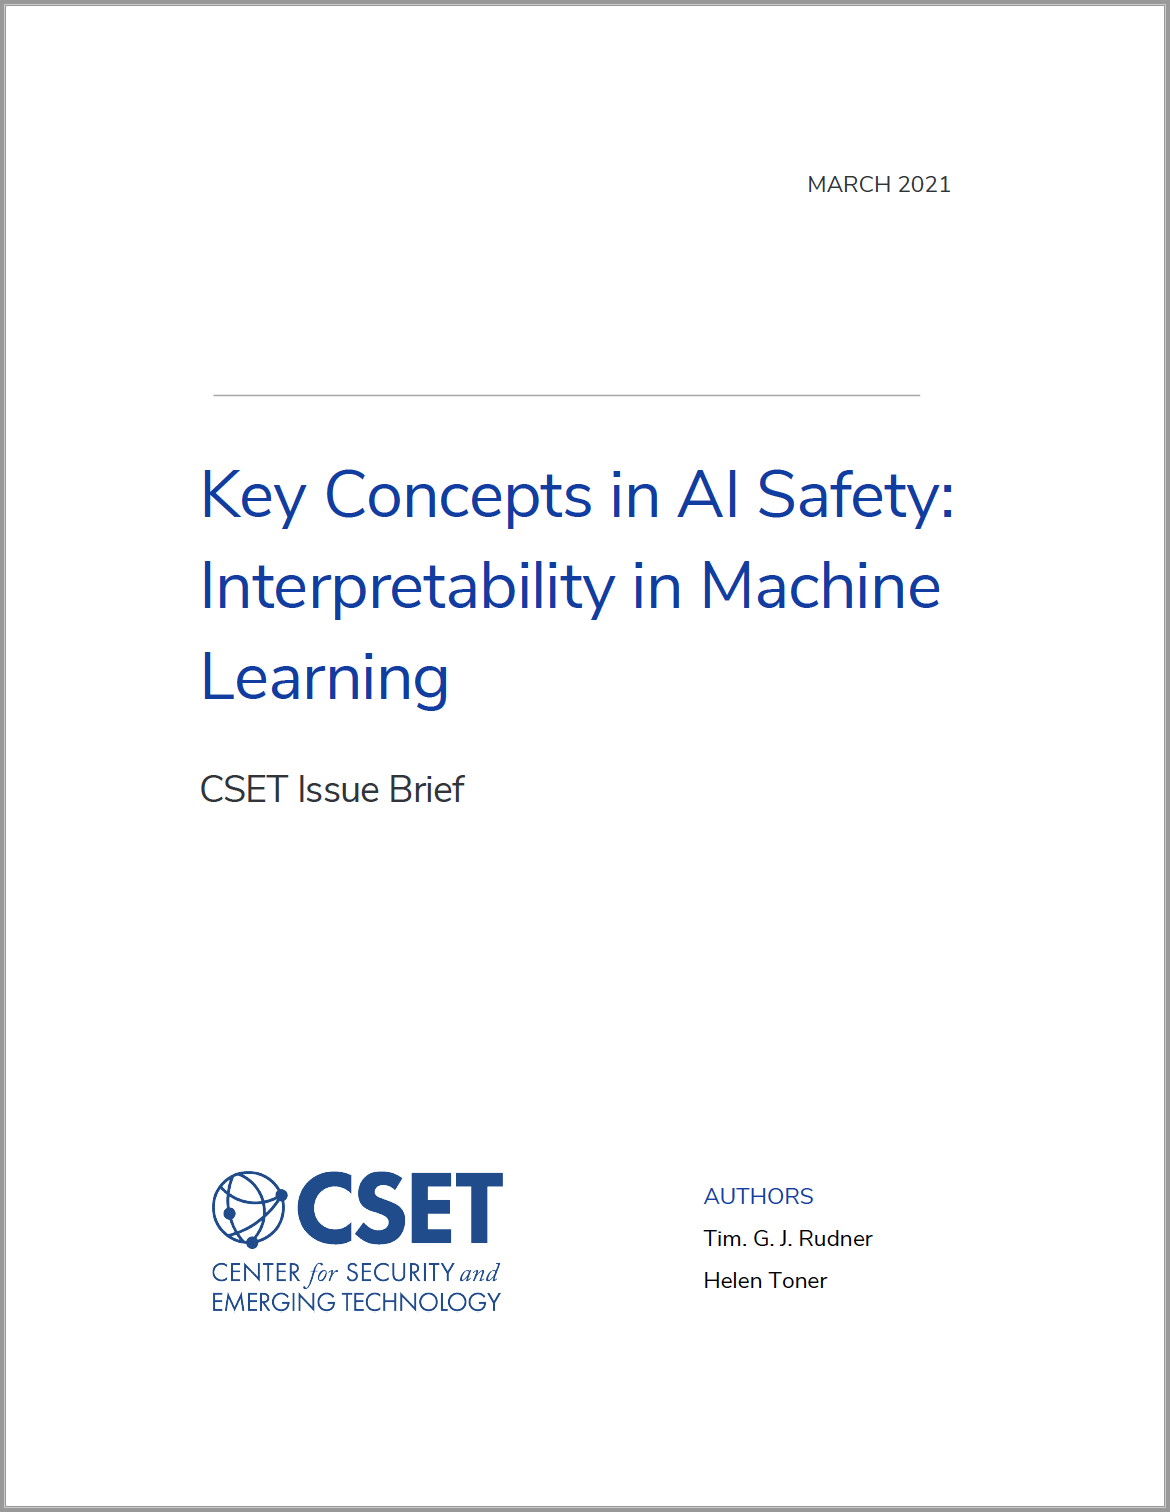 CSET - Key Concepts in AI Safety- Interpretability in Machine Learning Image